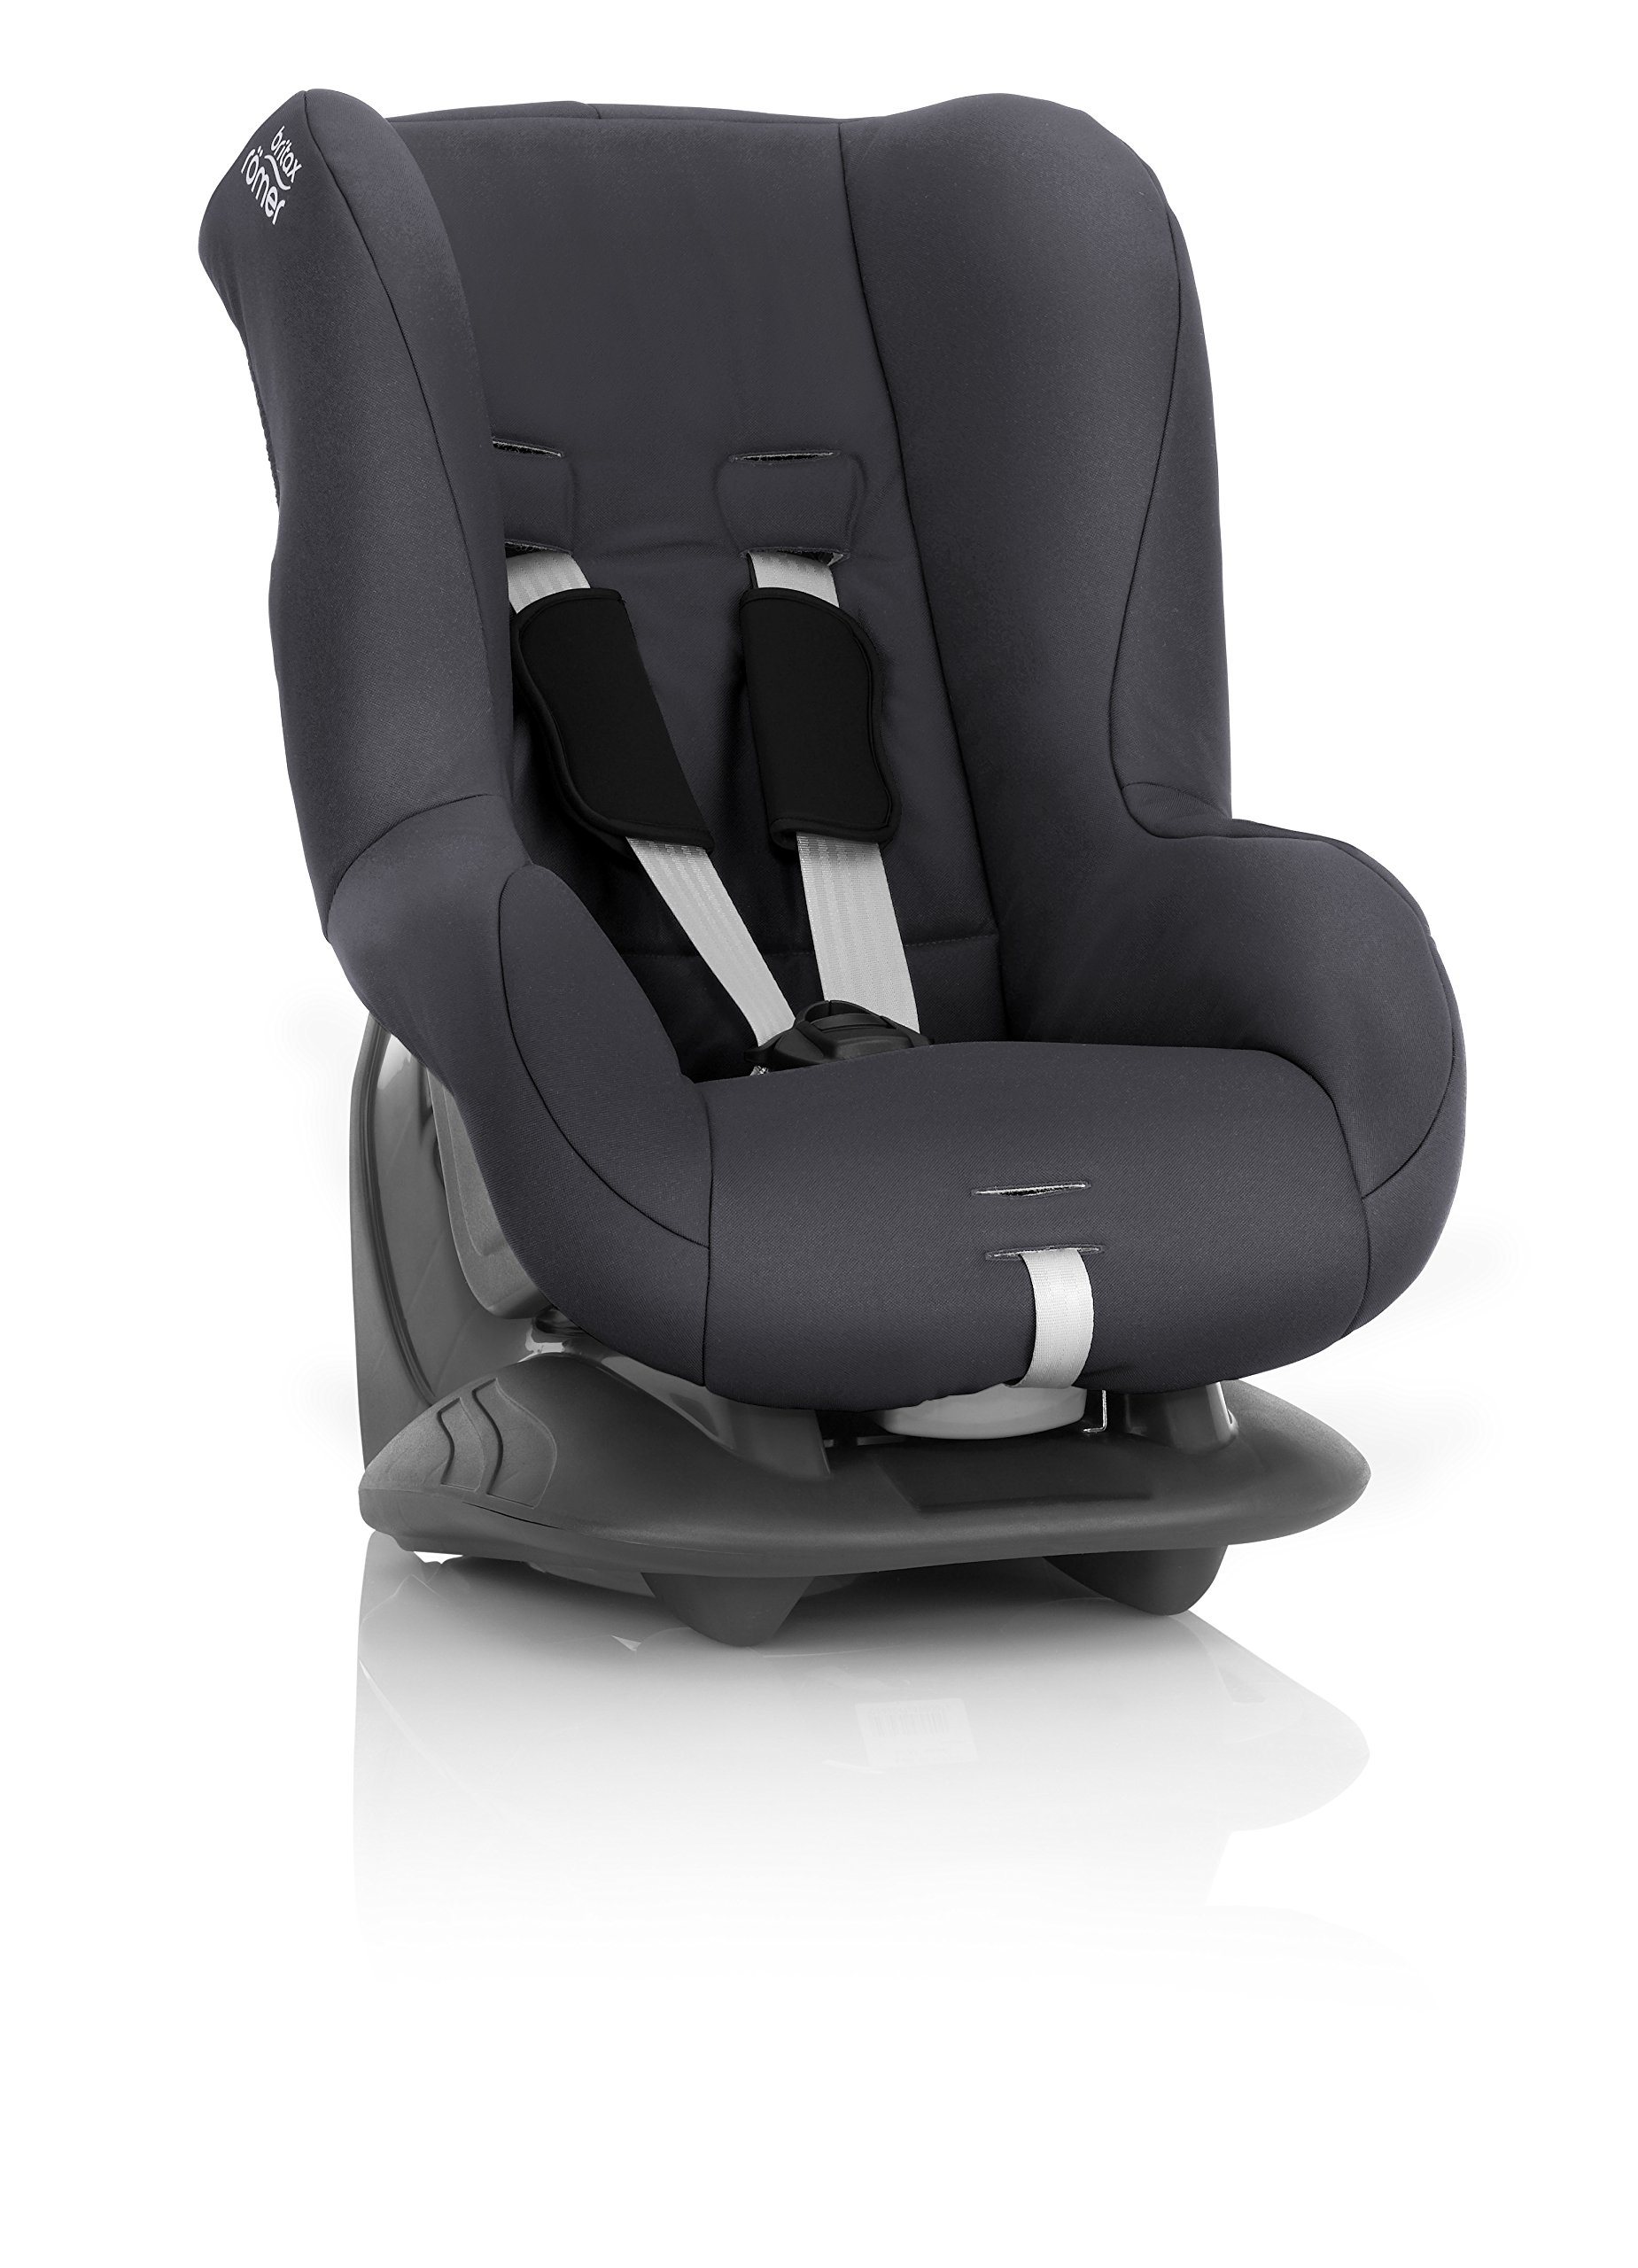 Britax Römer ECLIPSE Group 1 (9-18kg) Car Seat - Storm Grey Britax Römer Deep, protective side wings - our soft, padded side wings act as a protective cocoon that helps to absorb the force from a side impact, reducing the risk of injuries to your child. Easy adjustable headrest and harness - our padded headrest and harness can easily be adjusted with one hand to suit your child's height. 5-point harness - we believe a 5-point harness is the safest way to secure your child in a car seat because it keeps your child safe and tight in the seat's protective shell. 3